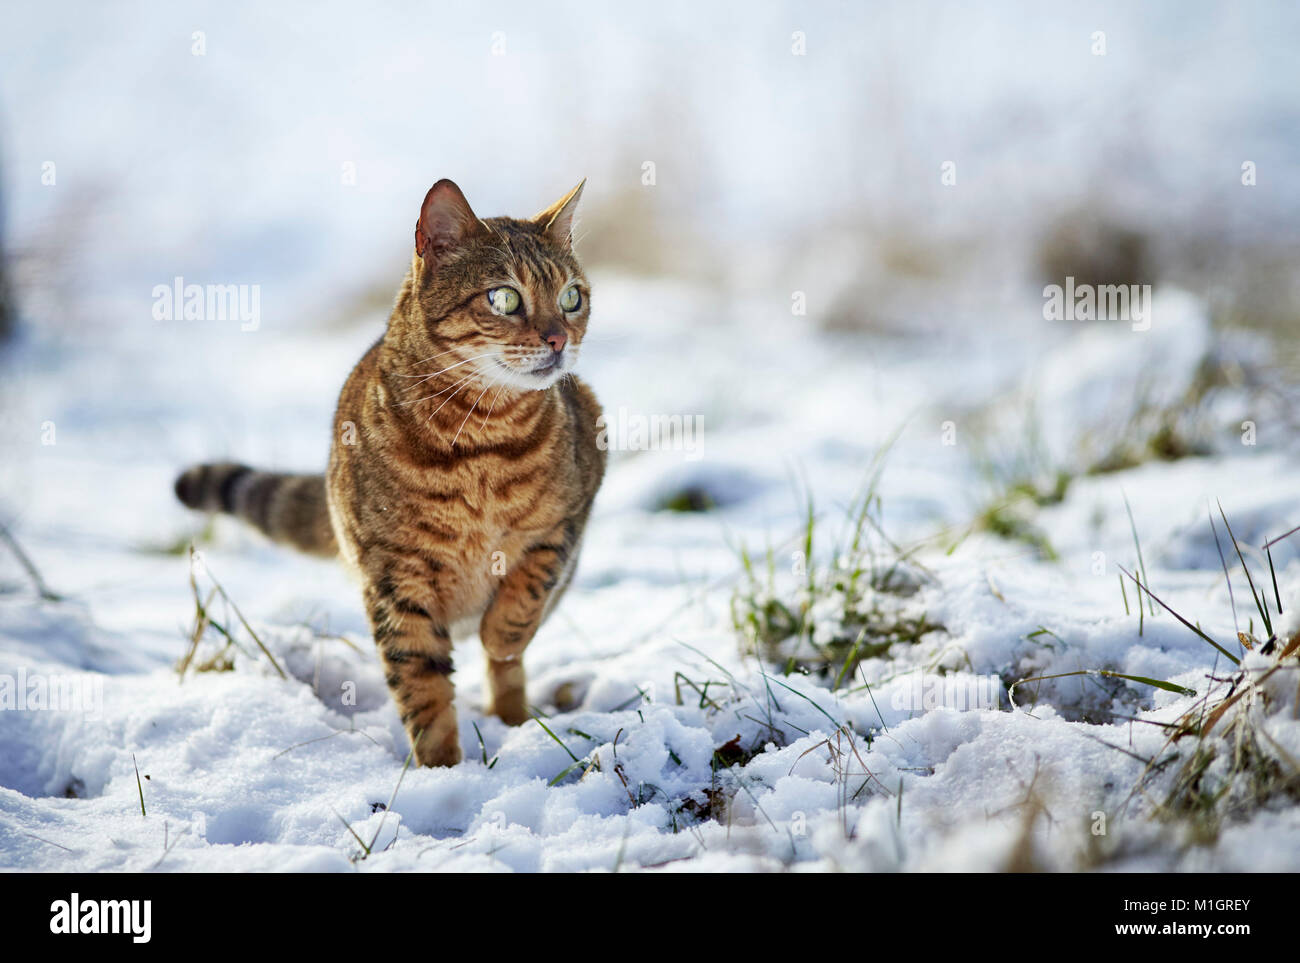 Bengal cat. Adult staning on snow. Germany - Stock Image